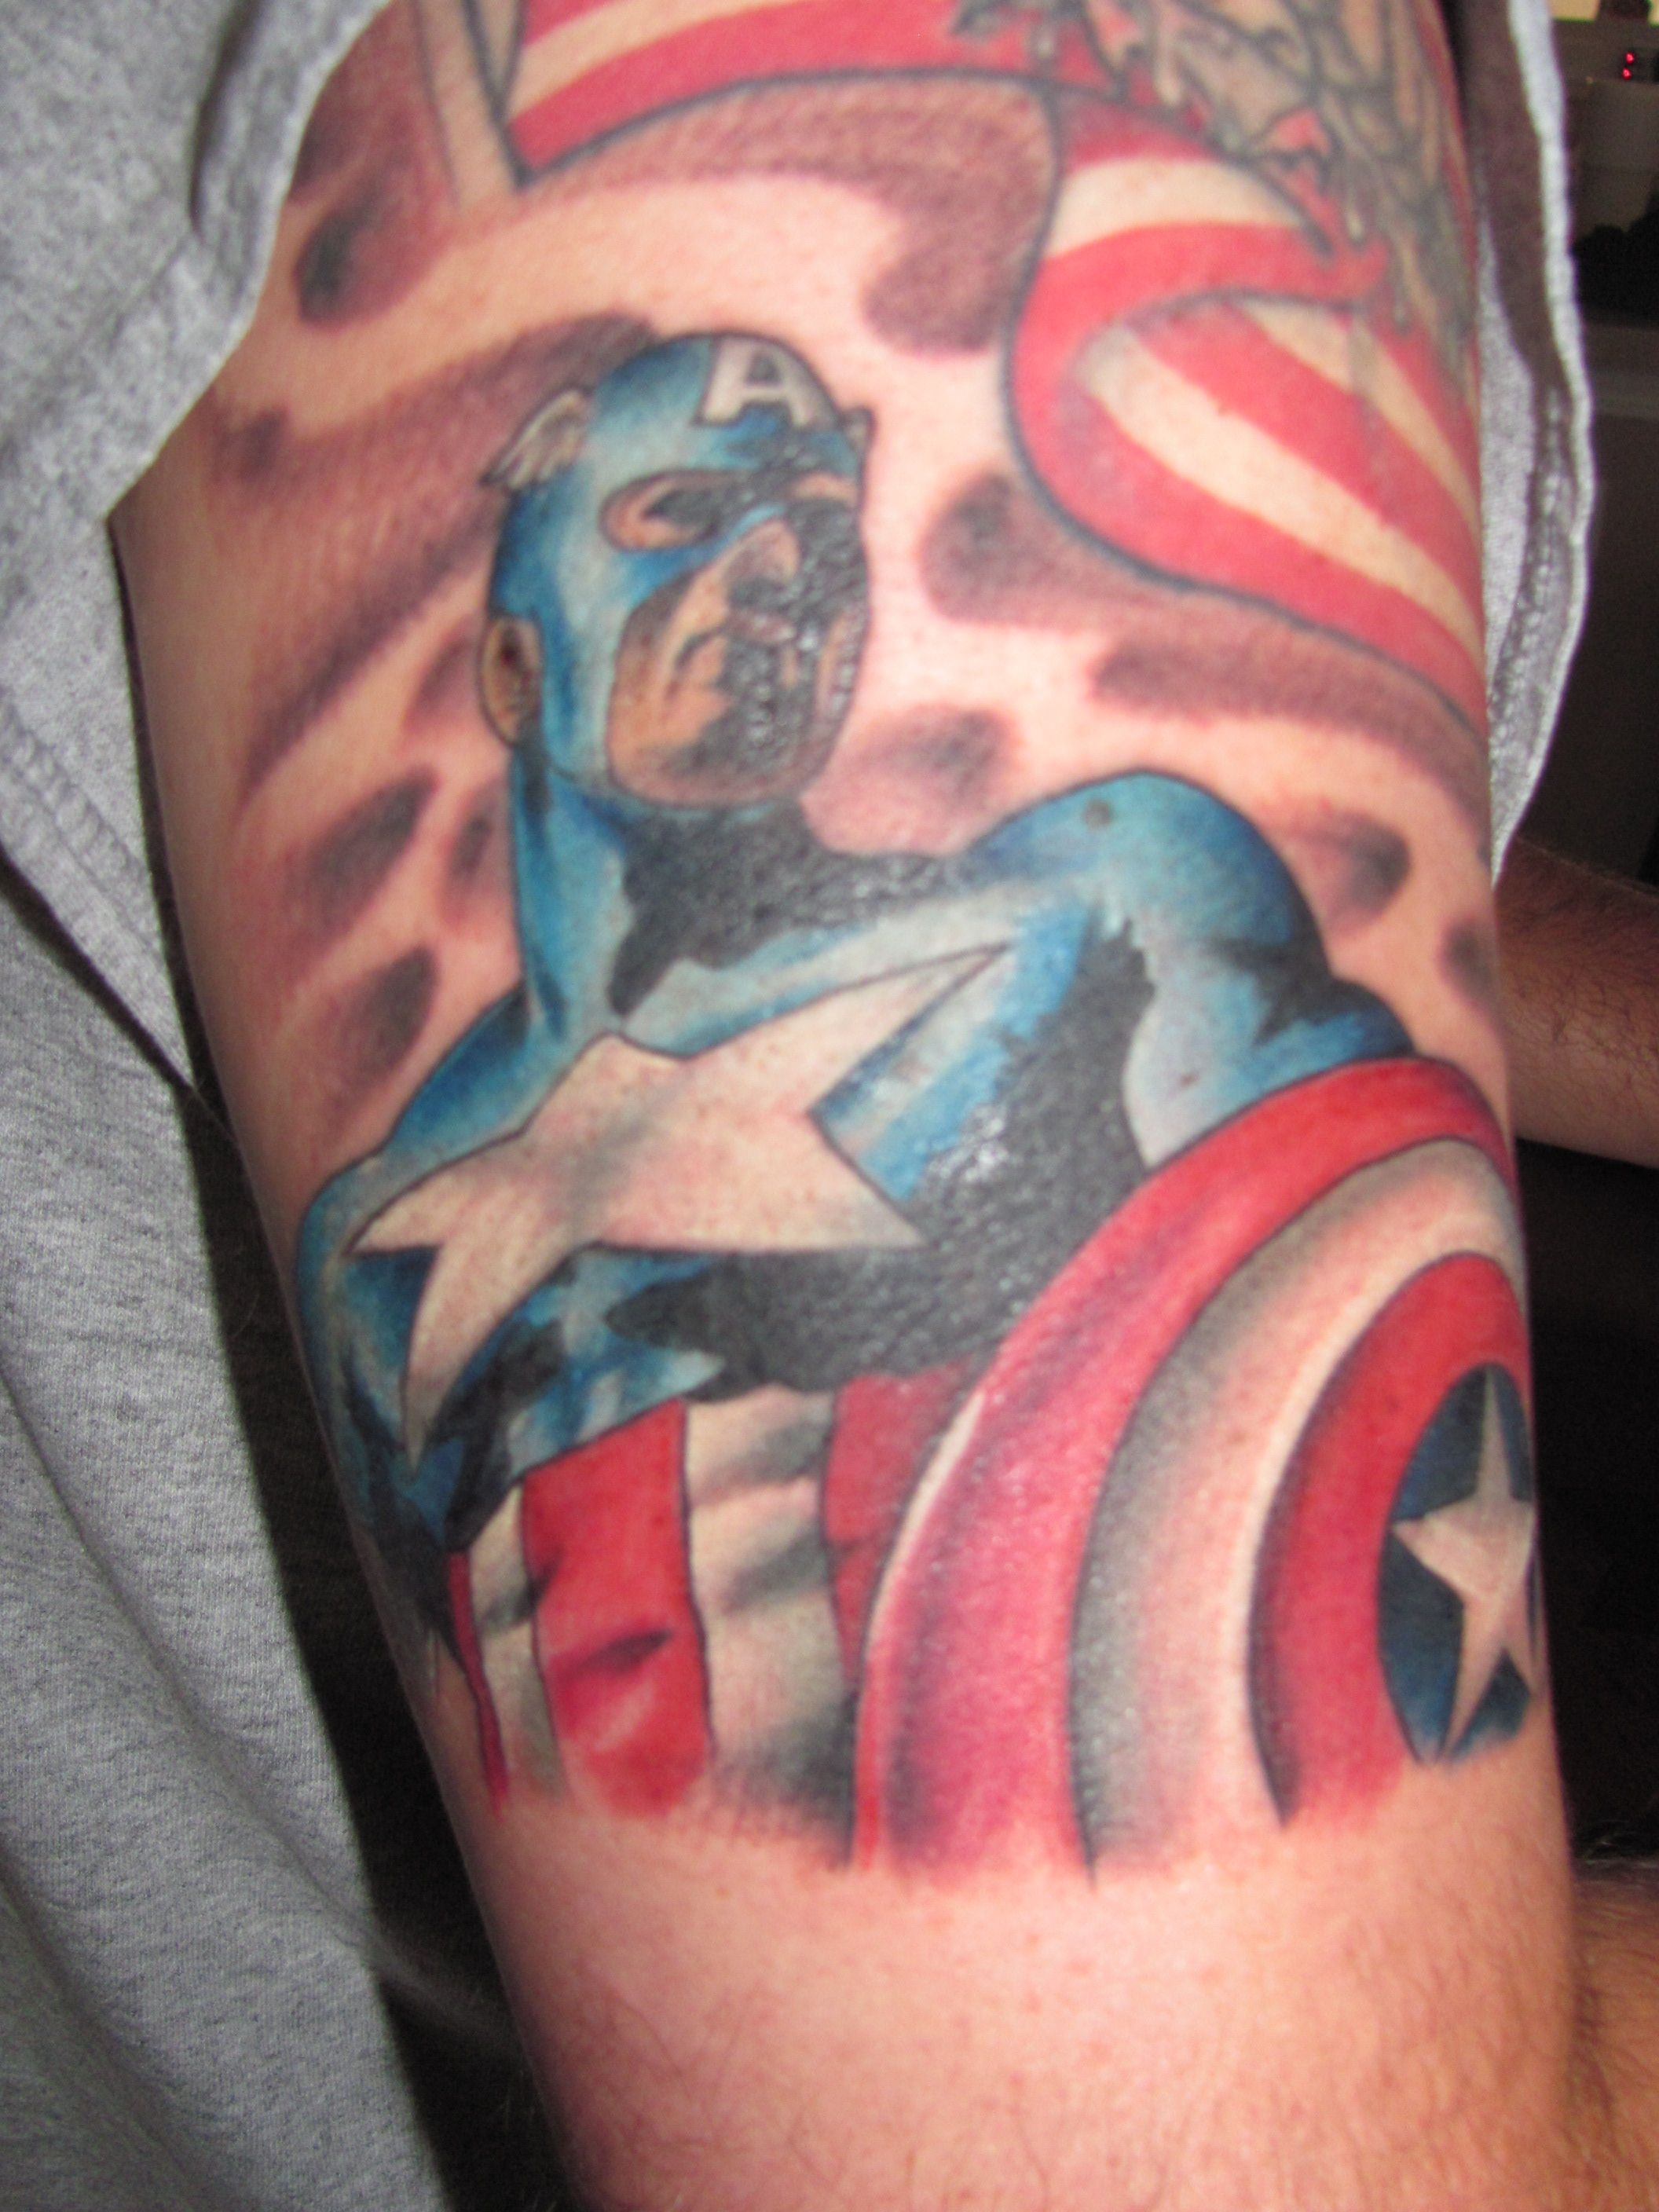 another great tattoo, yes we're comic book nerds....artist--Jason Bullman, Charlotte, NC